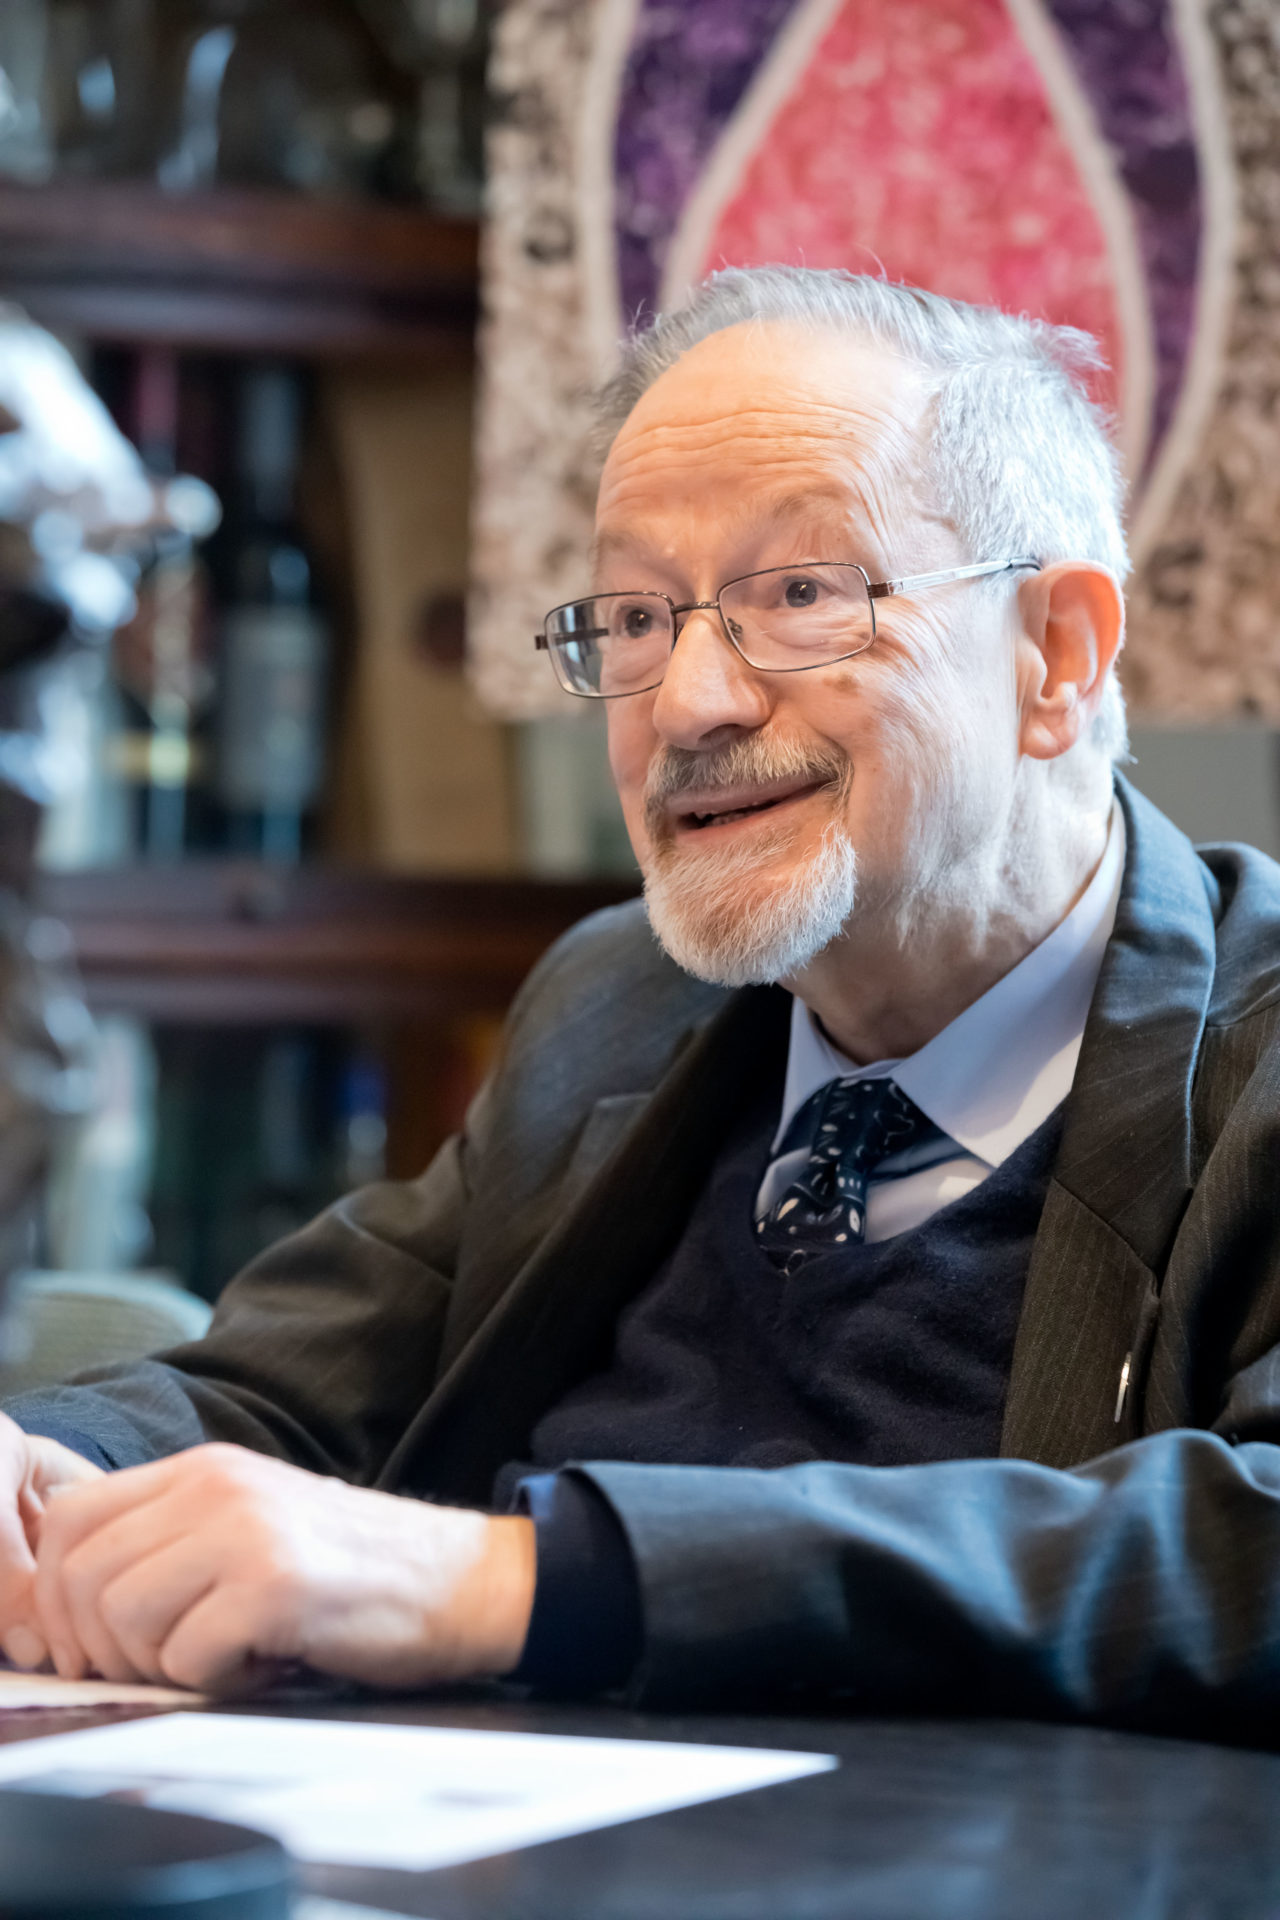 Martin Stern MBE, survivor of the Holocaust